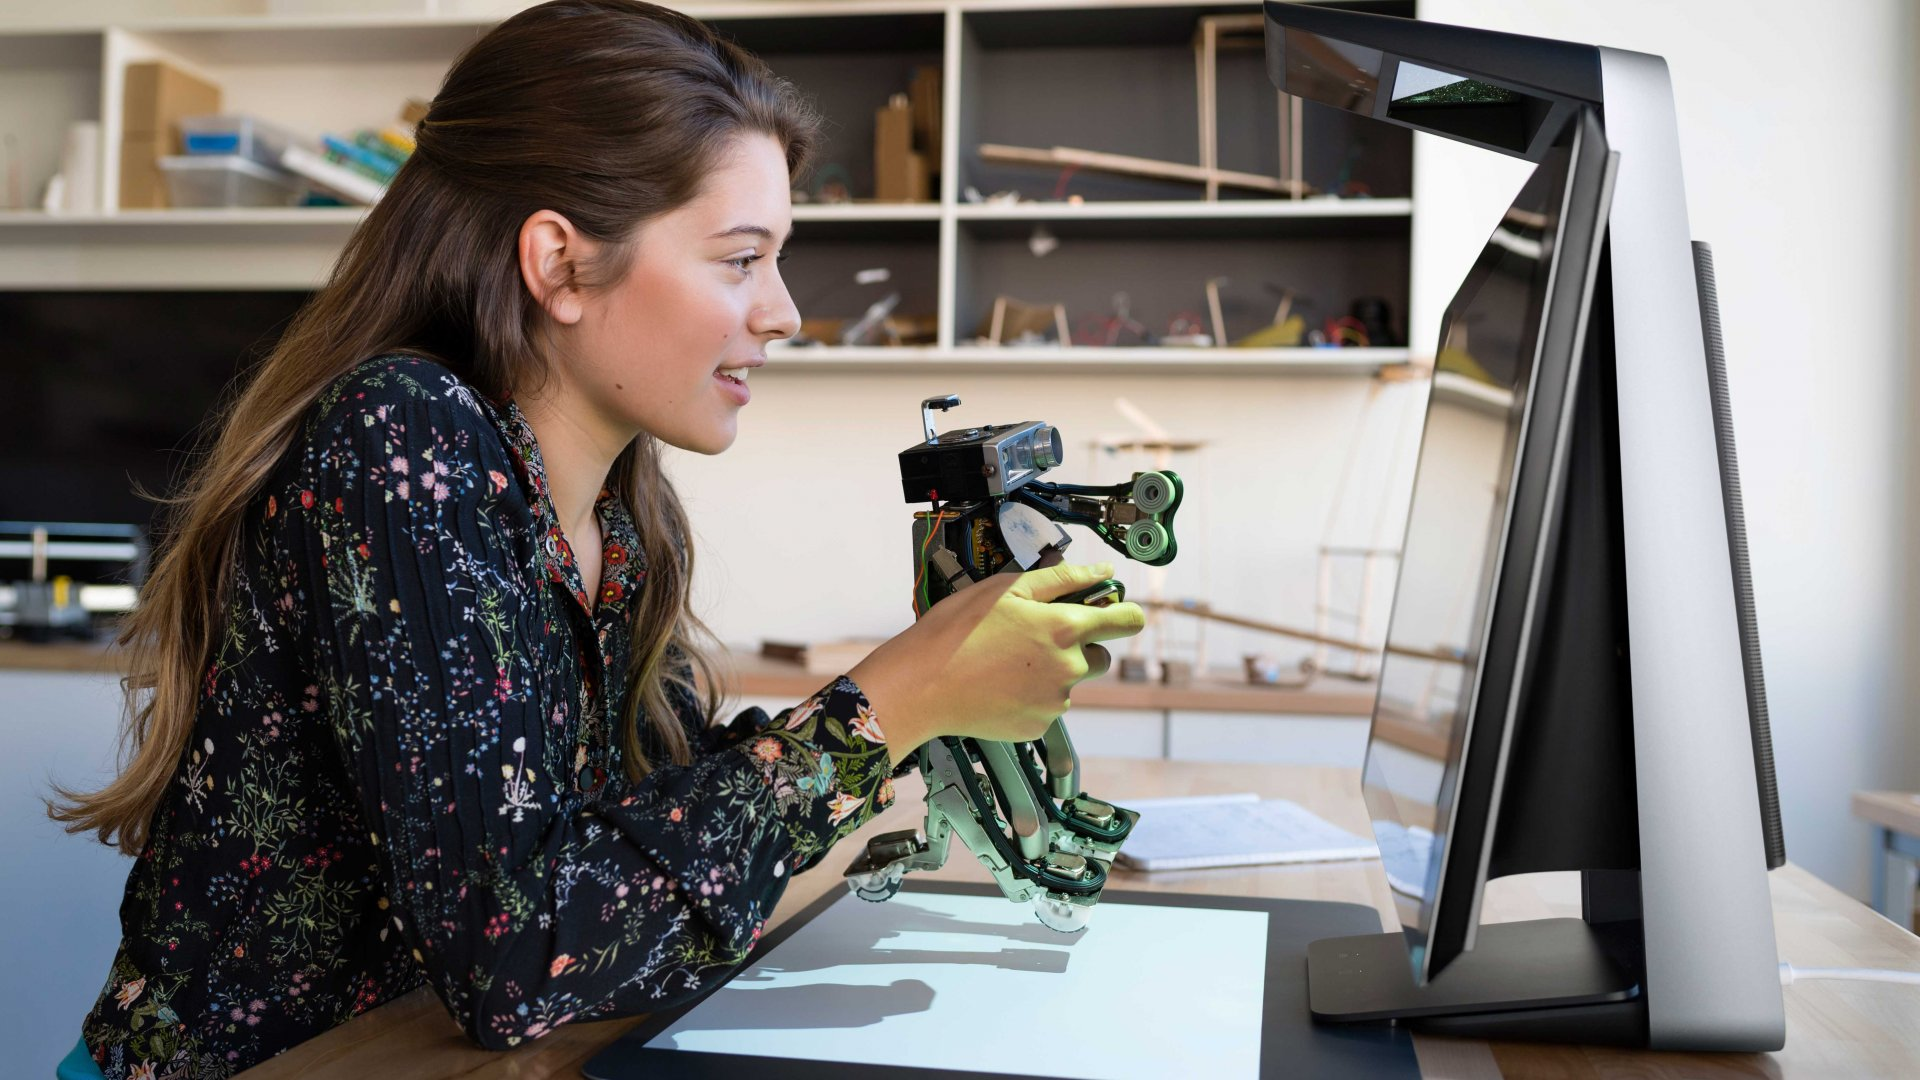 The HP Sprout Pro is a digital workstation for artists, designers, and other creatives.